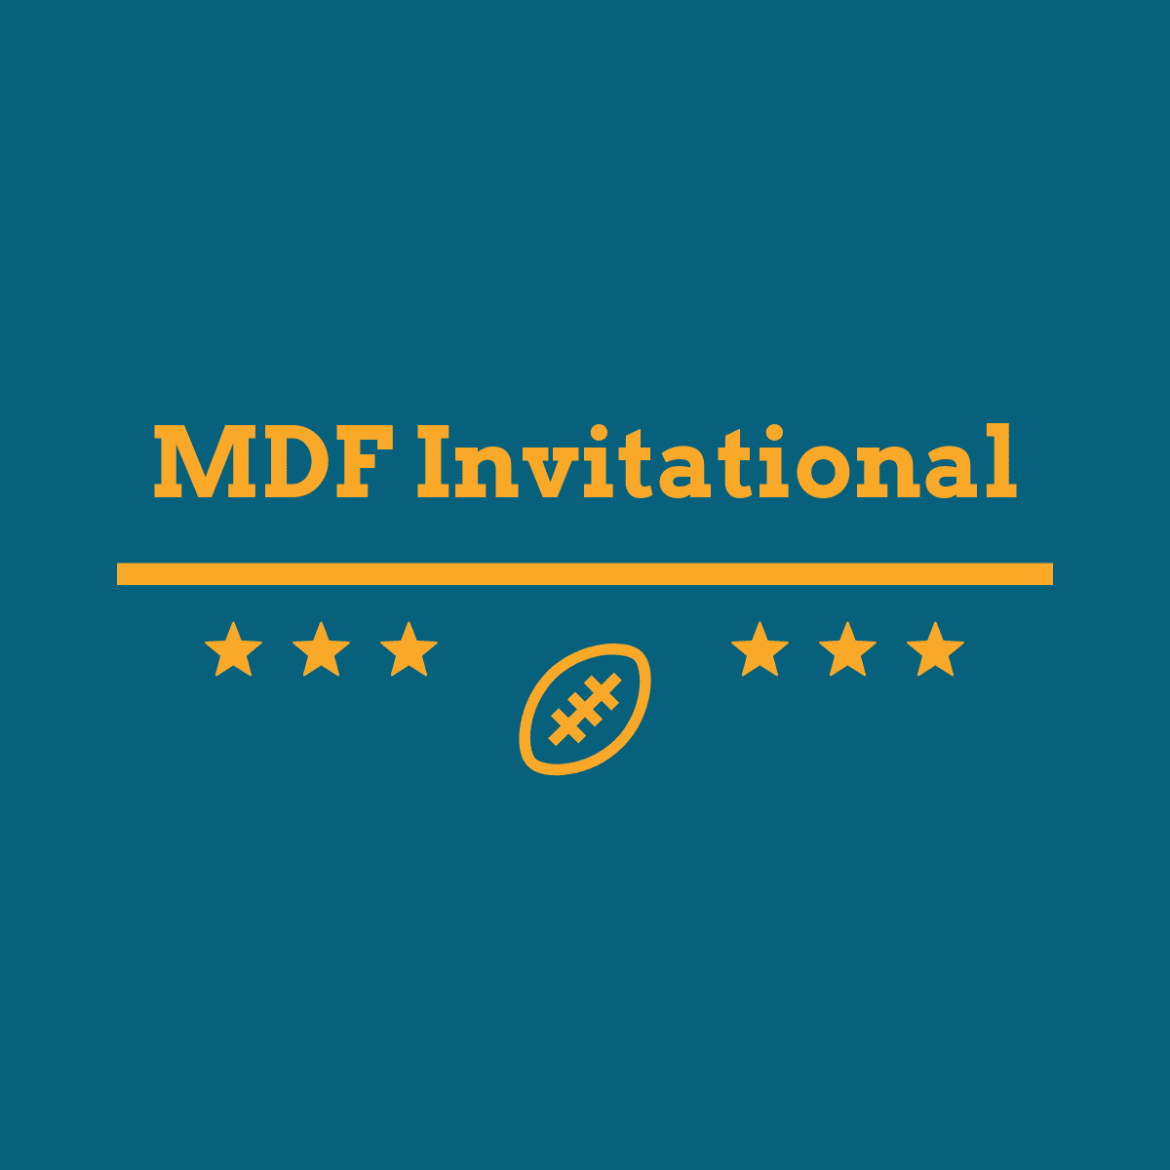 MDF Invitational Startup Draft Results (Rounds 21-30)